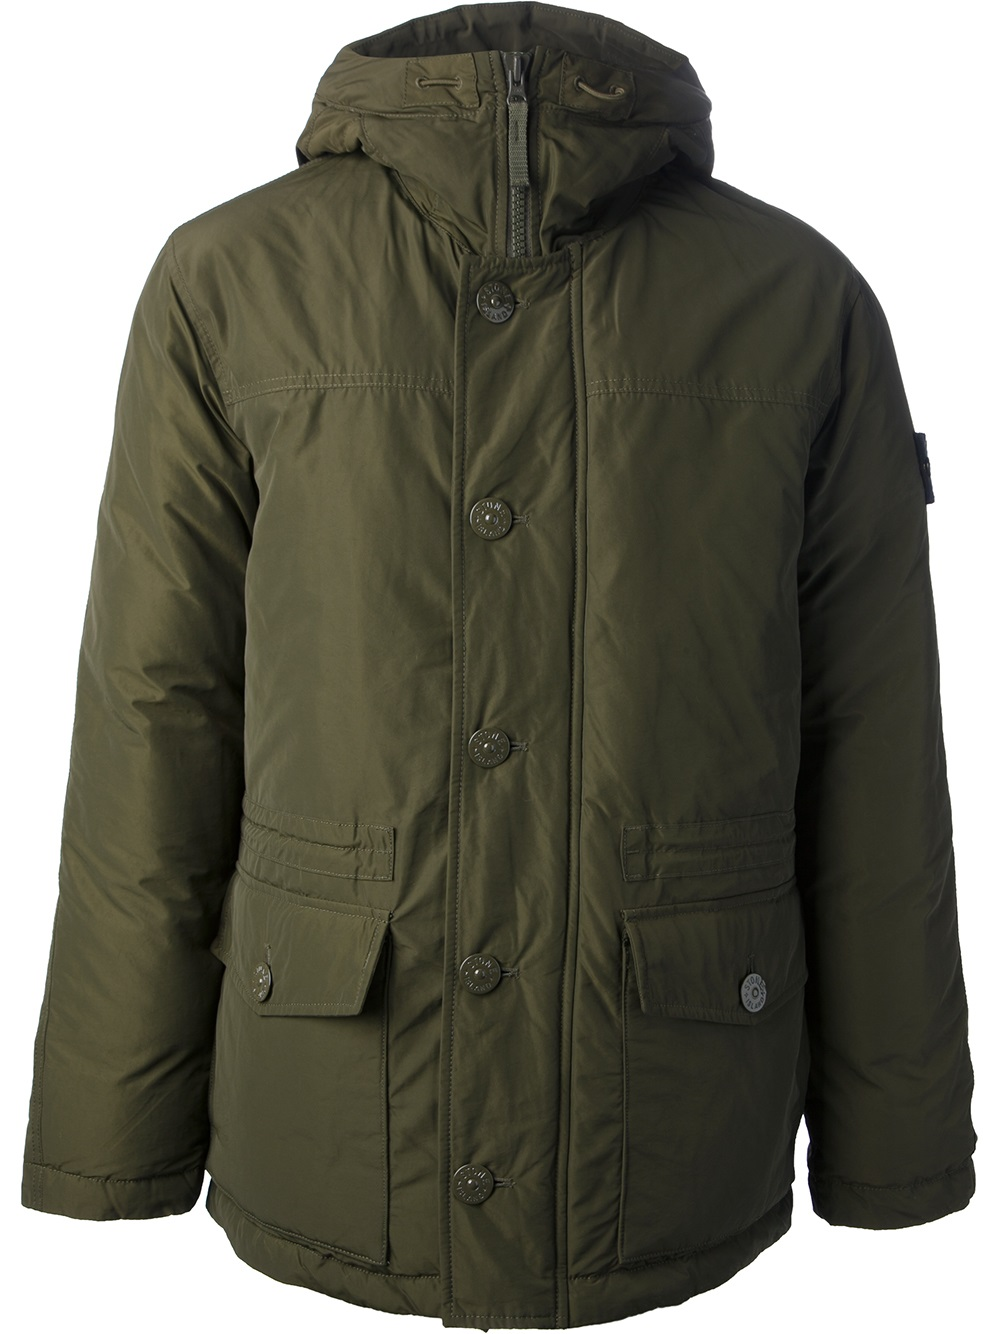 Stone Island Hooded Jacket In Green For Men Lyst